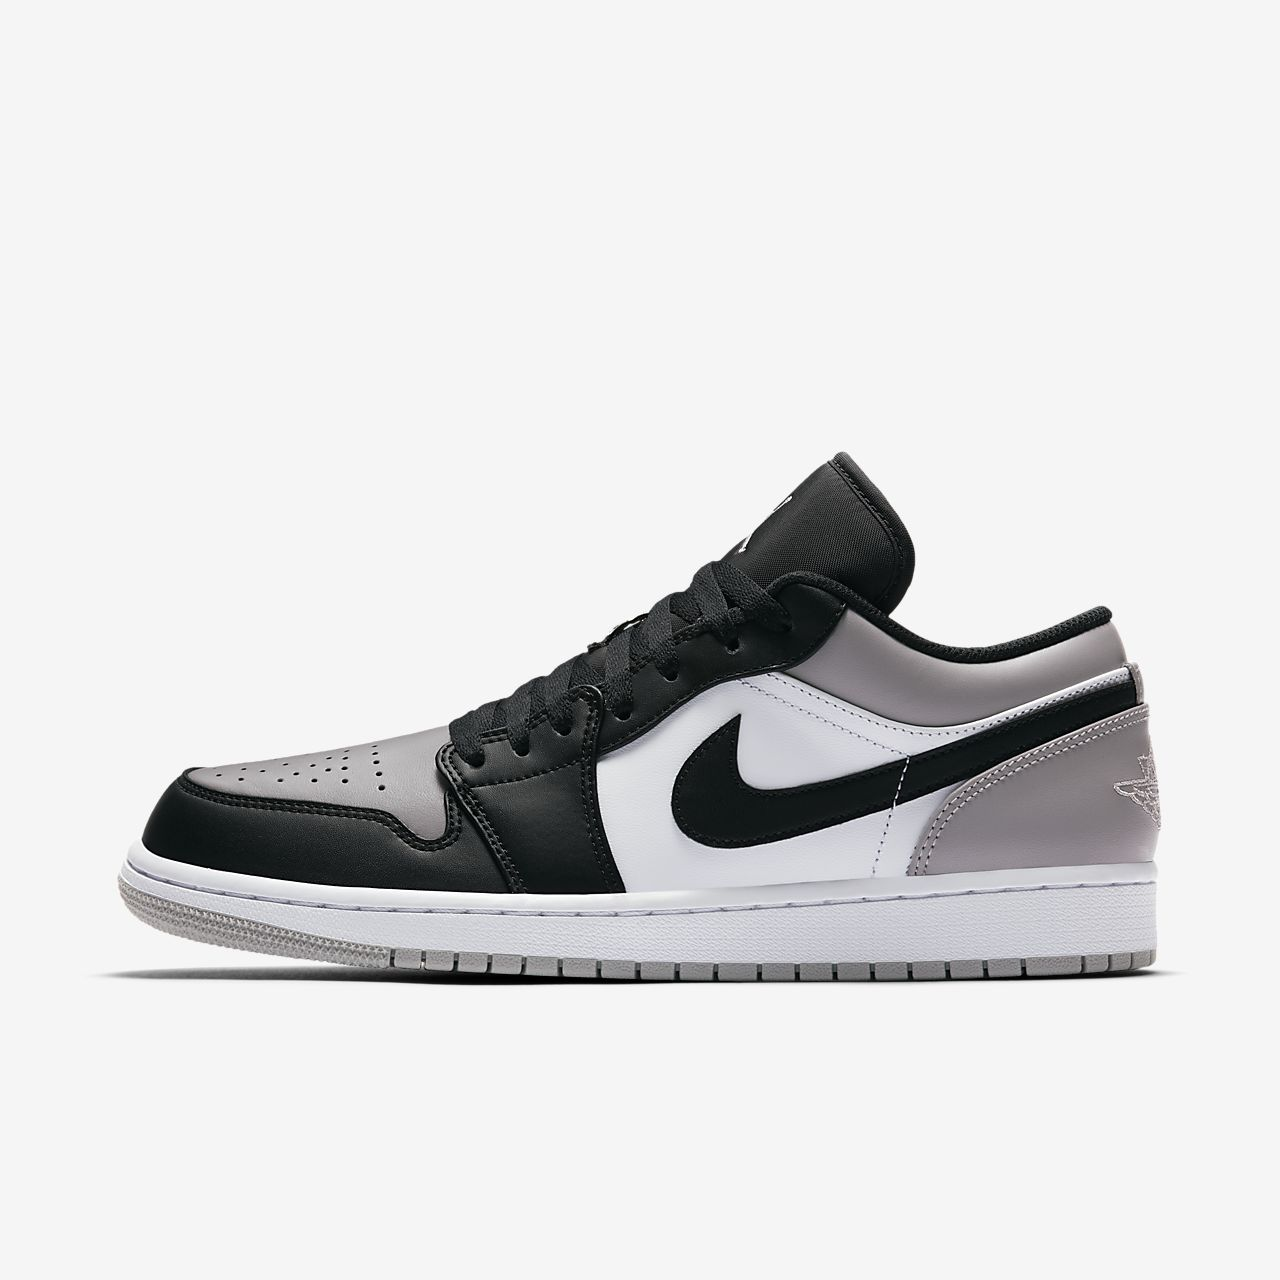 ... Air Jordan 1 Low Men's Shoe